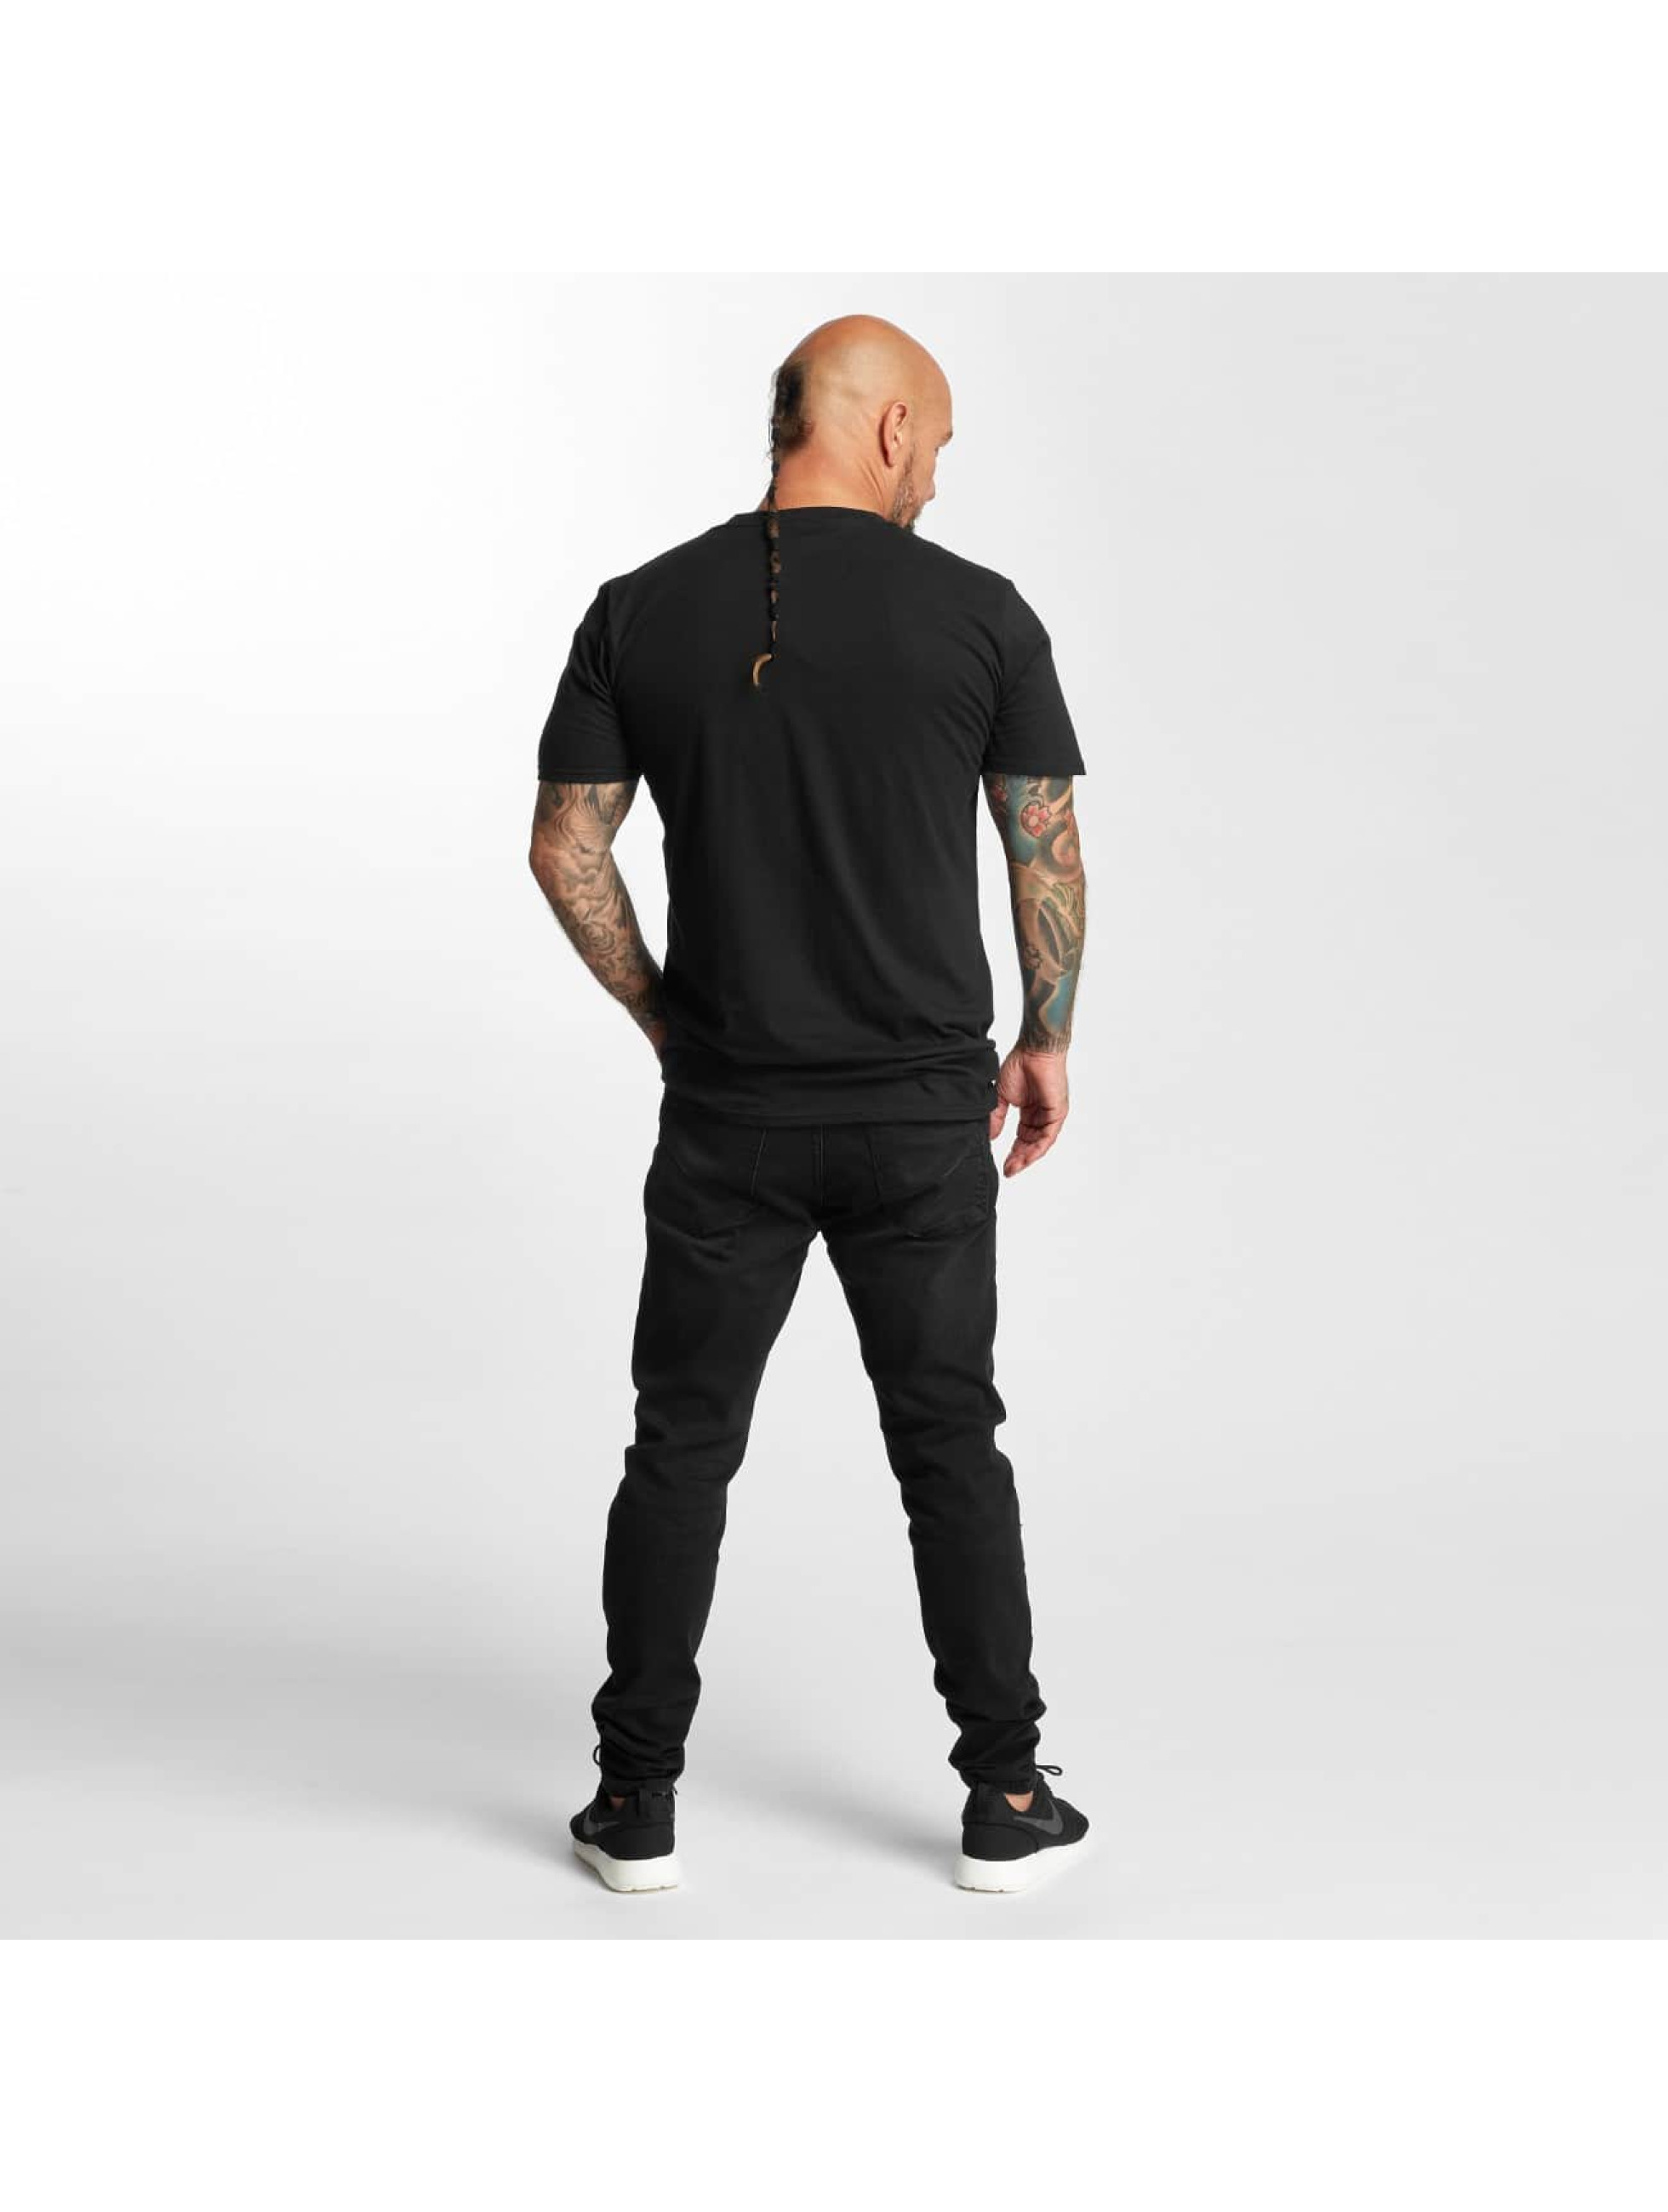 I Love Tattoo T-Shirt Anker schwarz